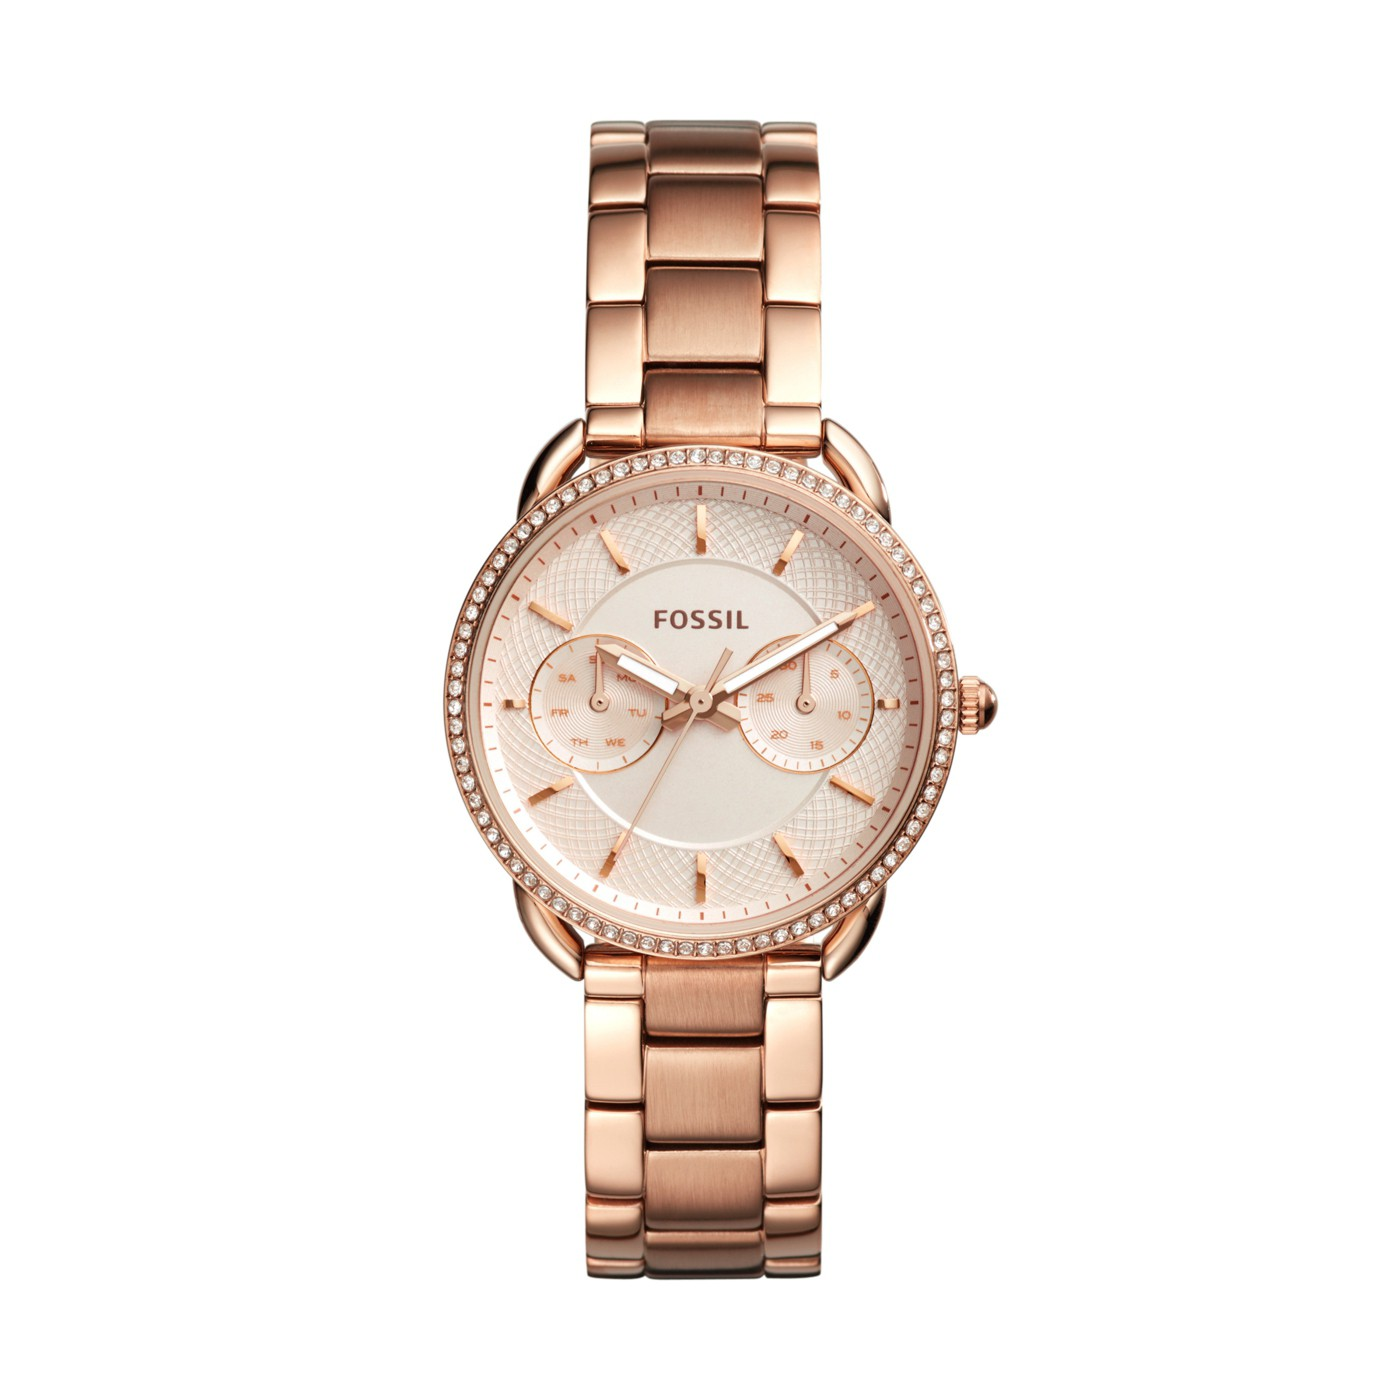 Fossil Women's Tailor Rose Gold Tone Steel Watch ES4264